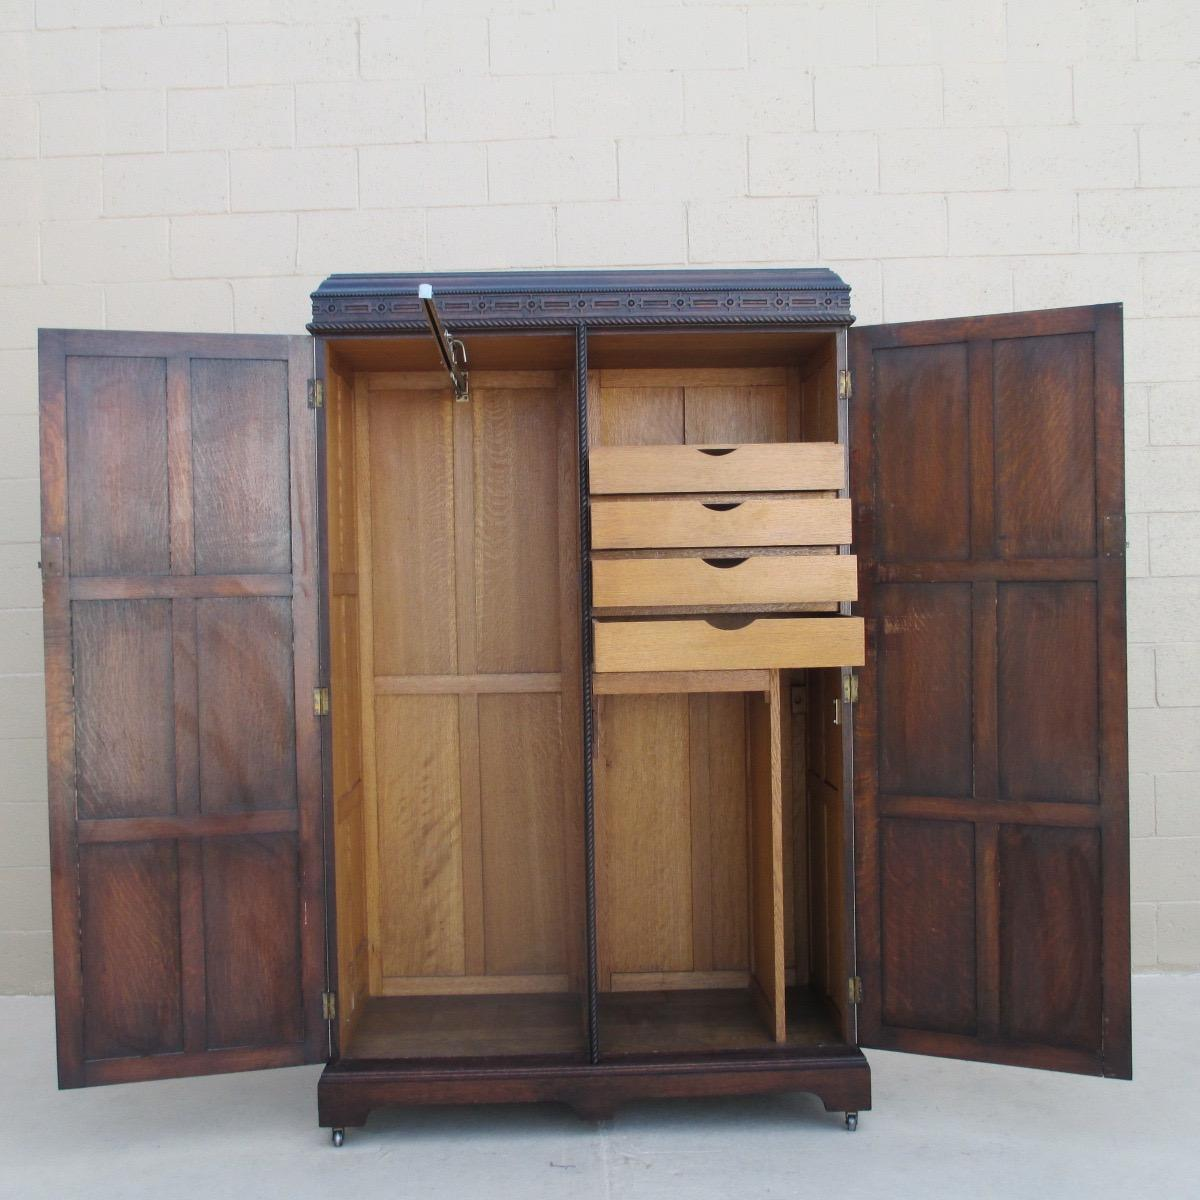 Antique Armoire Wardrobe With Drawers Pictures to Pin on Pinterest